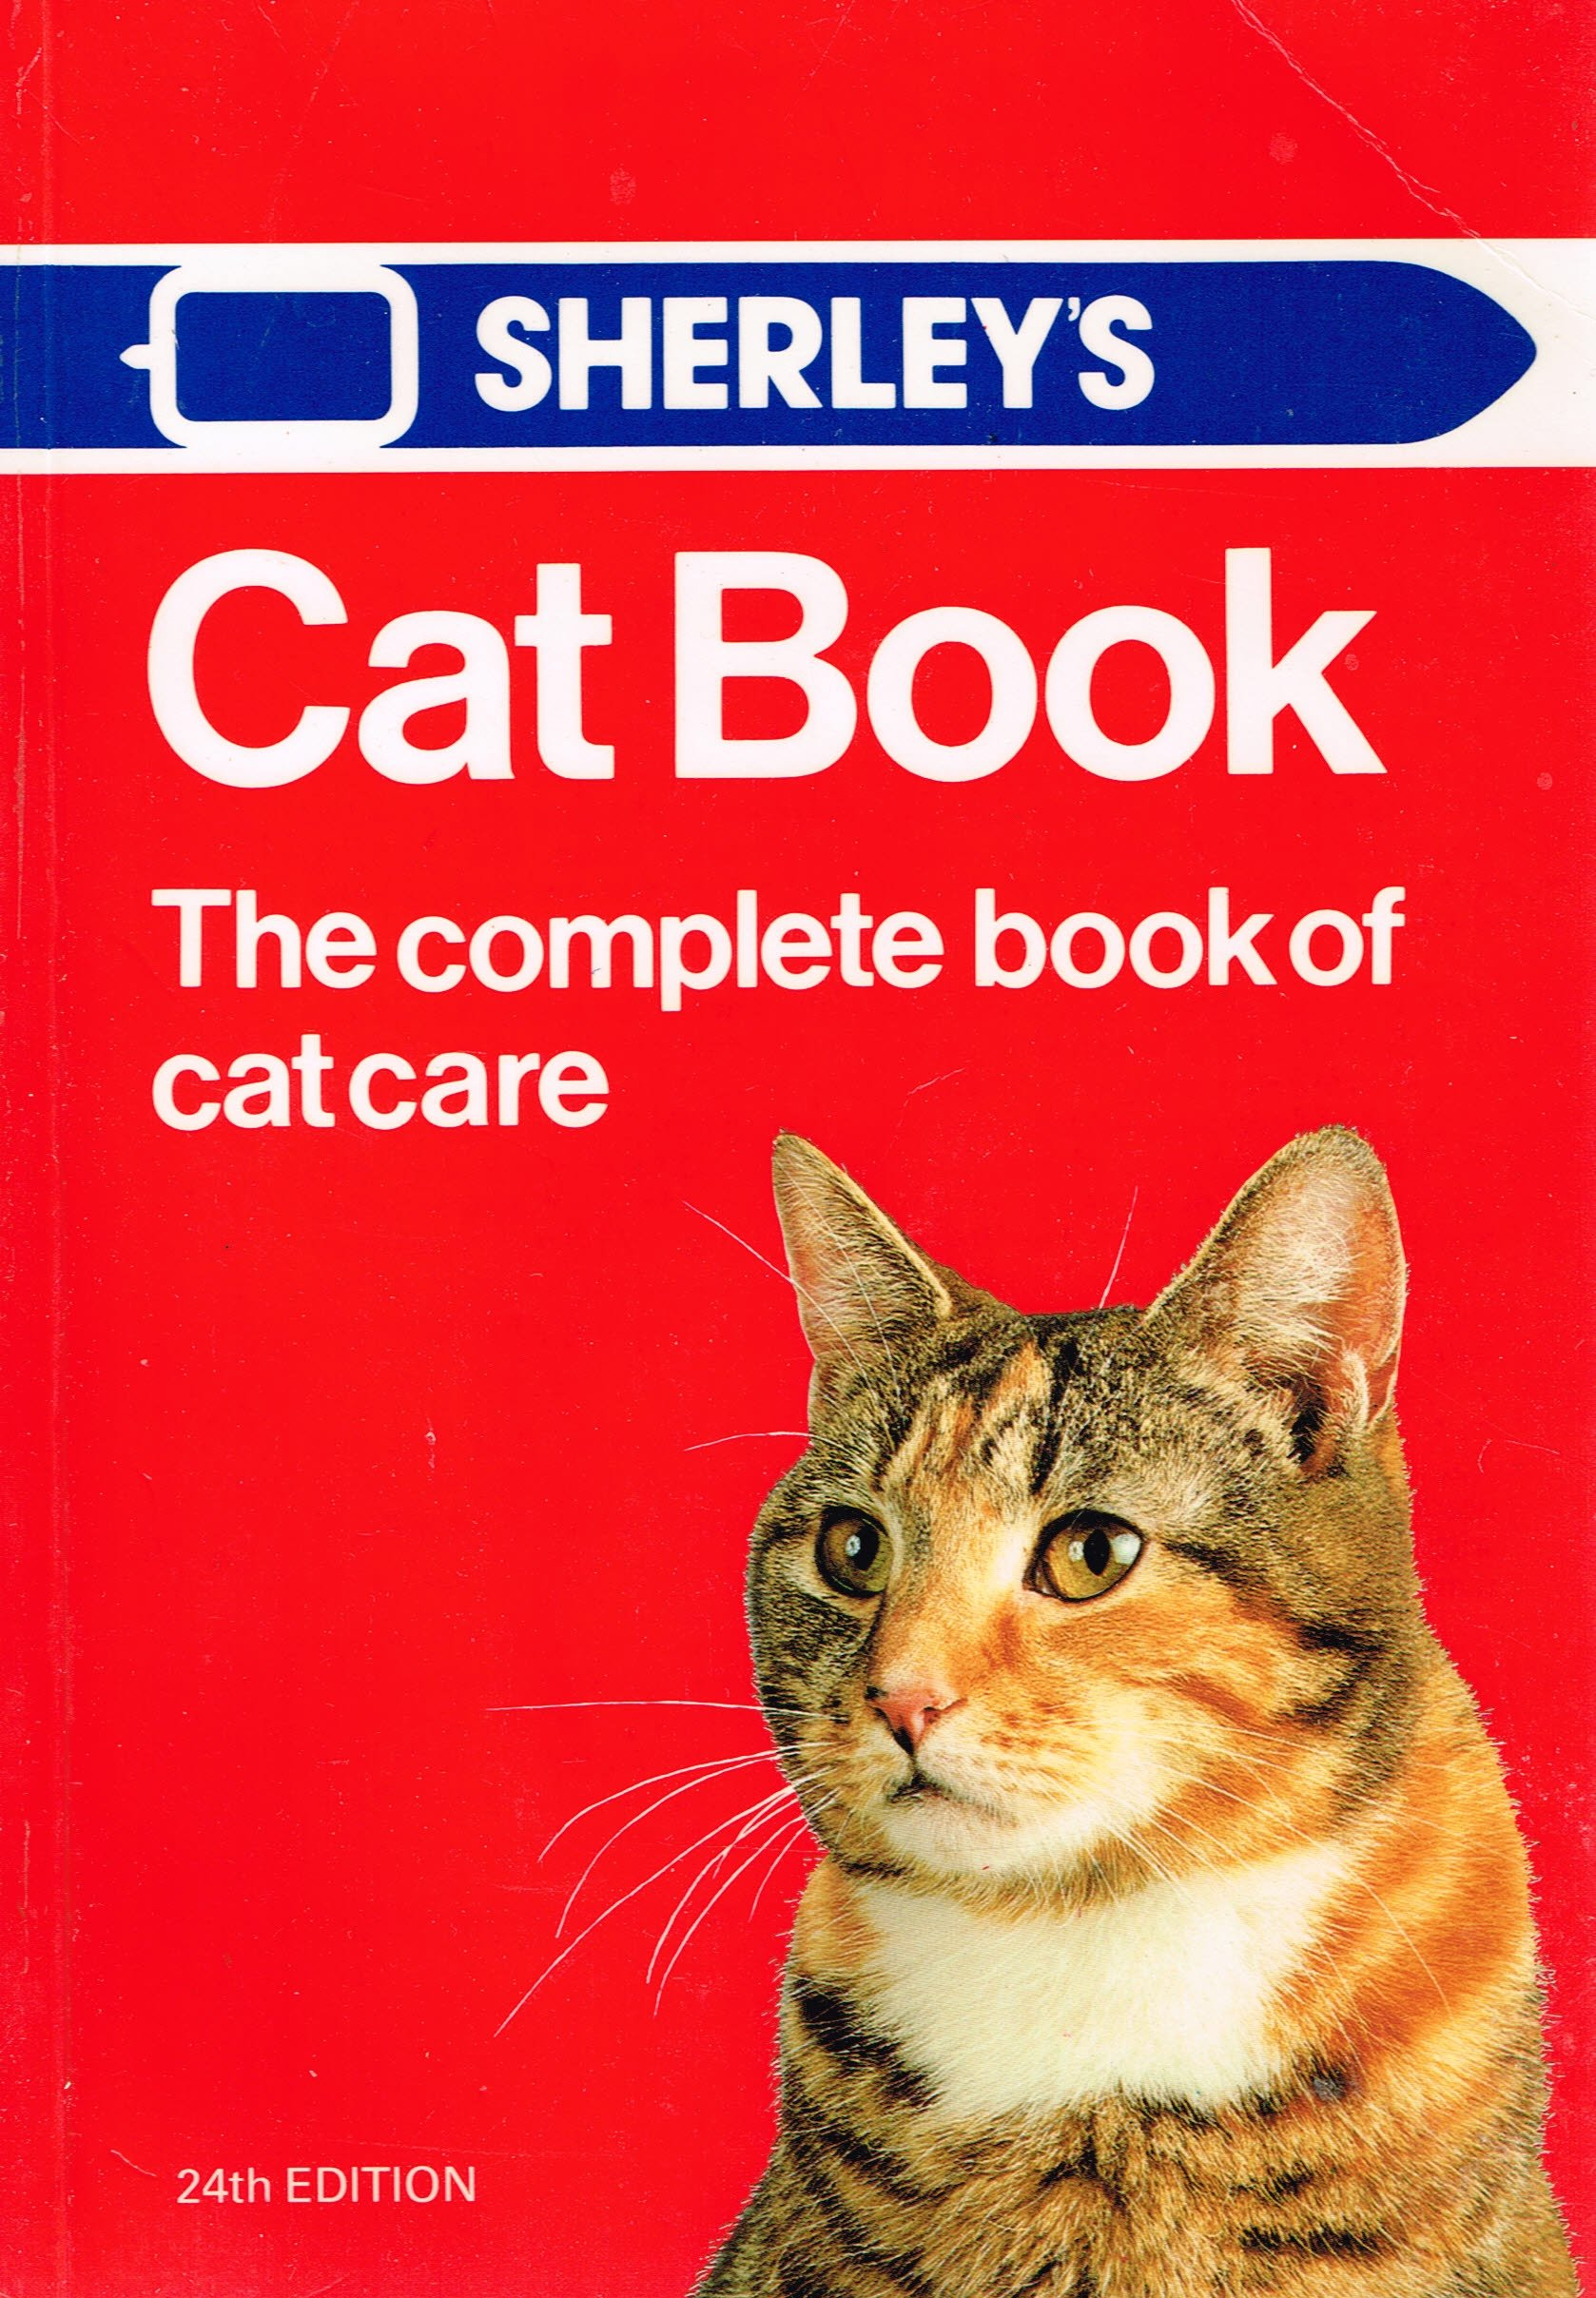 Sherley's cat book: The complete book of cat care